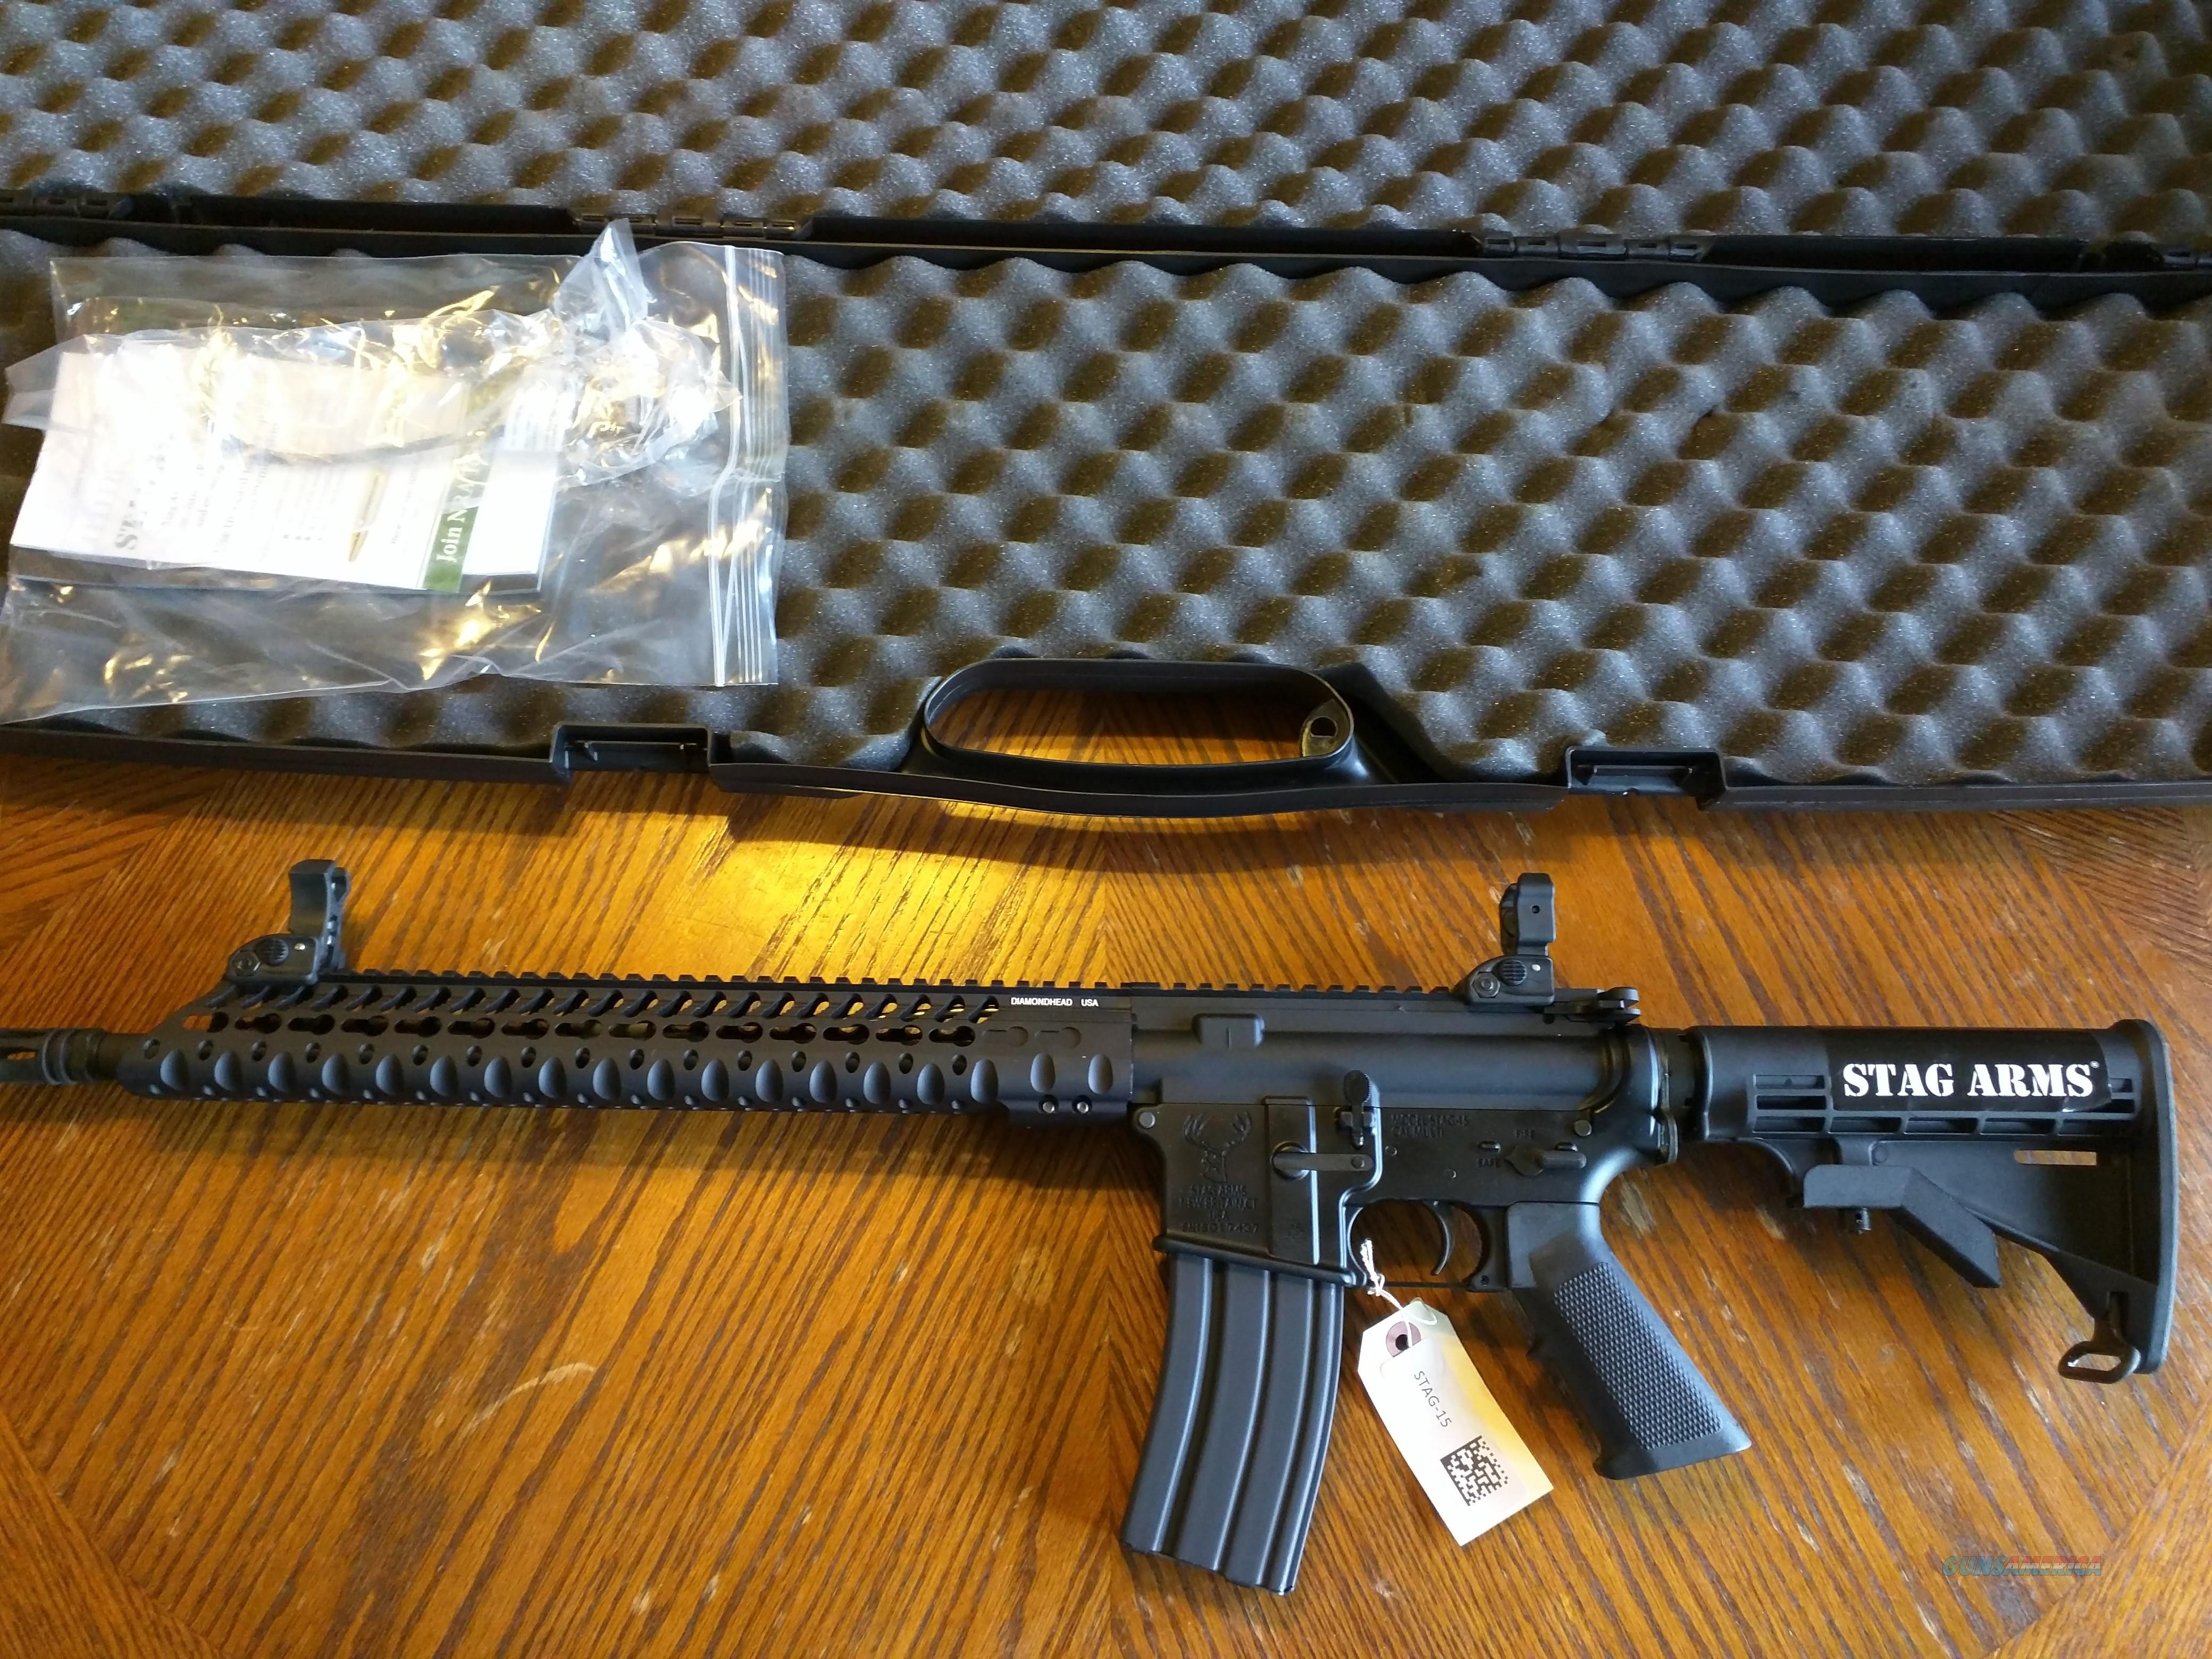 Stag AR 15 AR15 model 3T VRS 5.56 / 223 13.5 in vrs rail modular aluminum Key Mod handguard 16 in Chrome Lined Barrel Diamondhead flip up sights 30 round single stage trigger hard case new in box ON SALE!!! FREE LAYAWAY!!  Guns > Rifles > AR-15 Rifles - Small Manufacturers > Complete Rifle